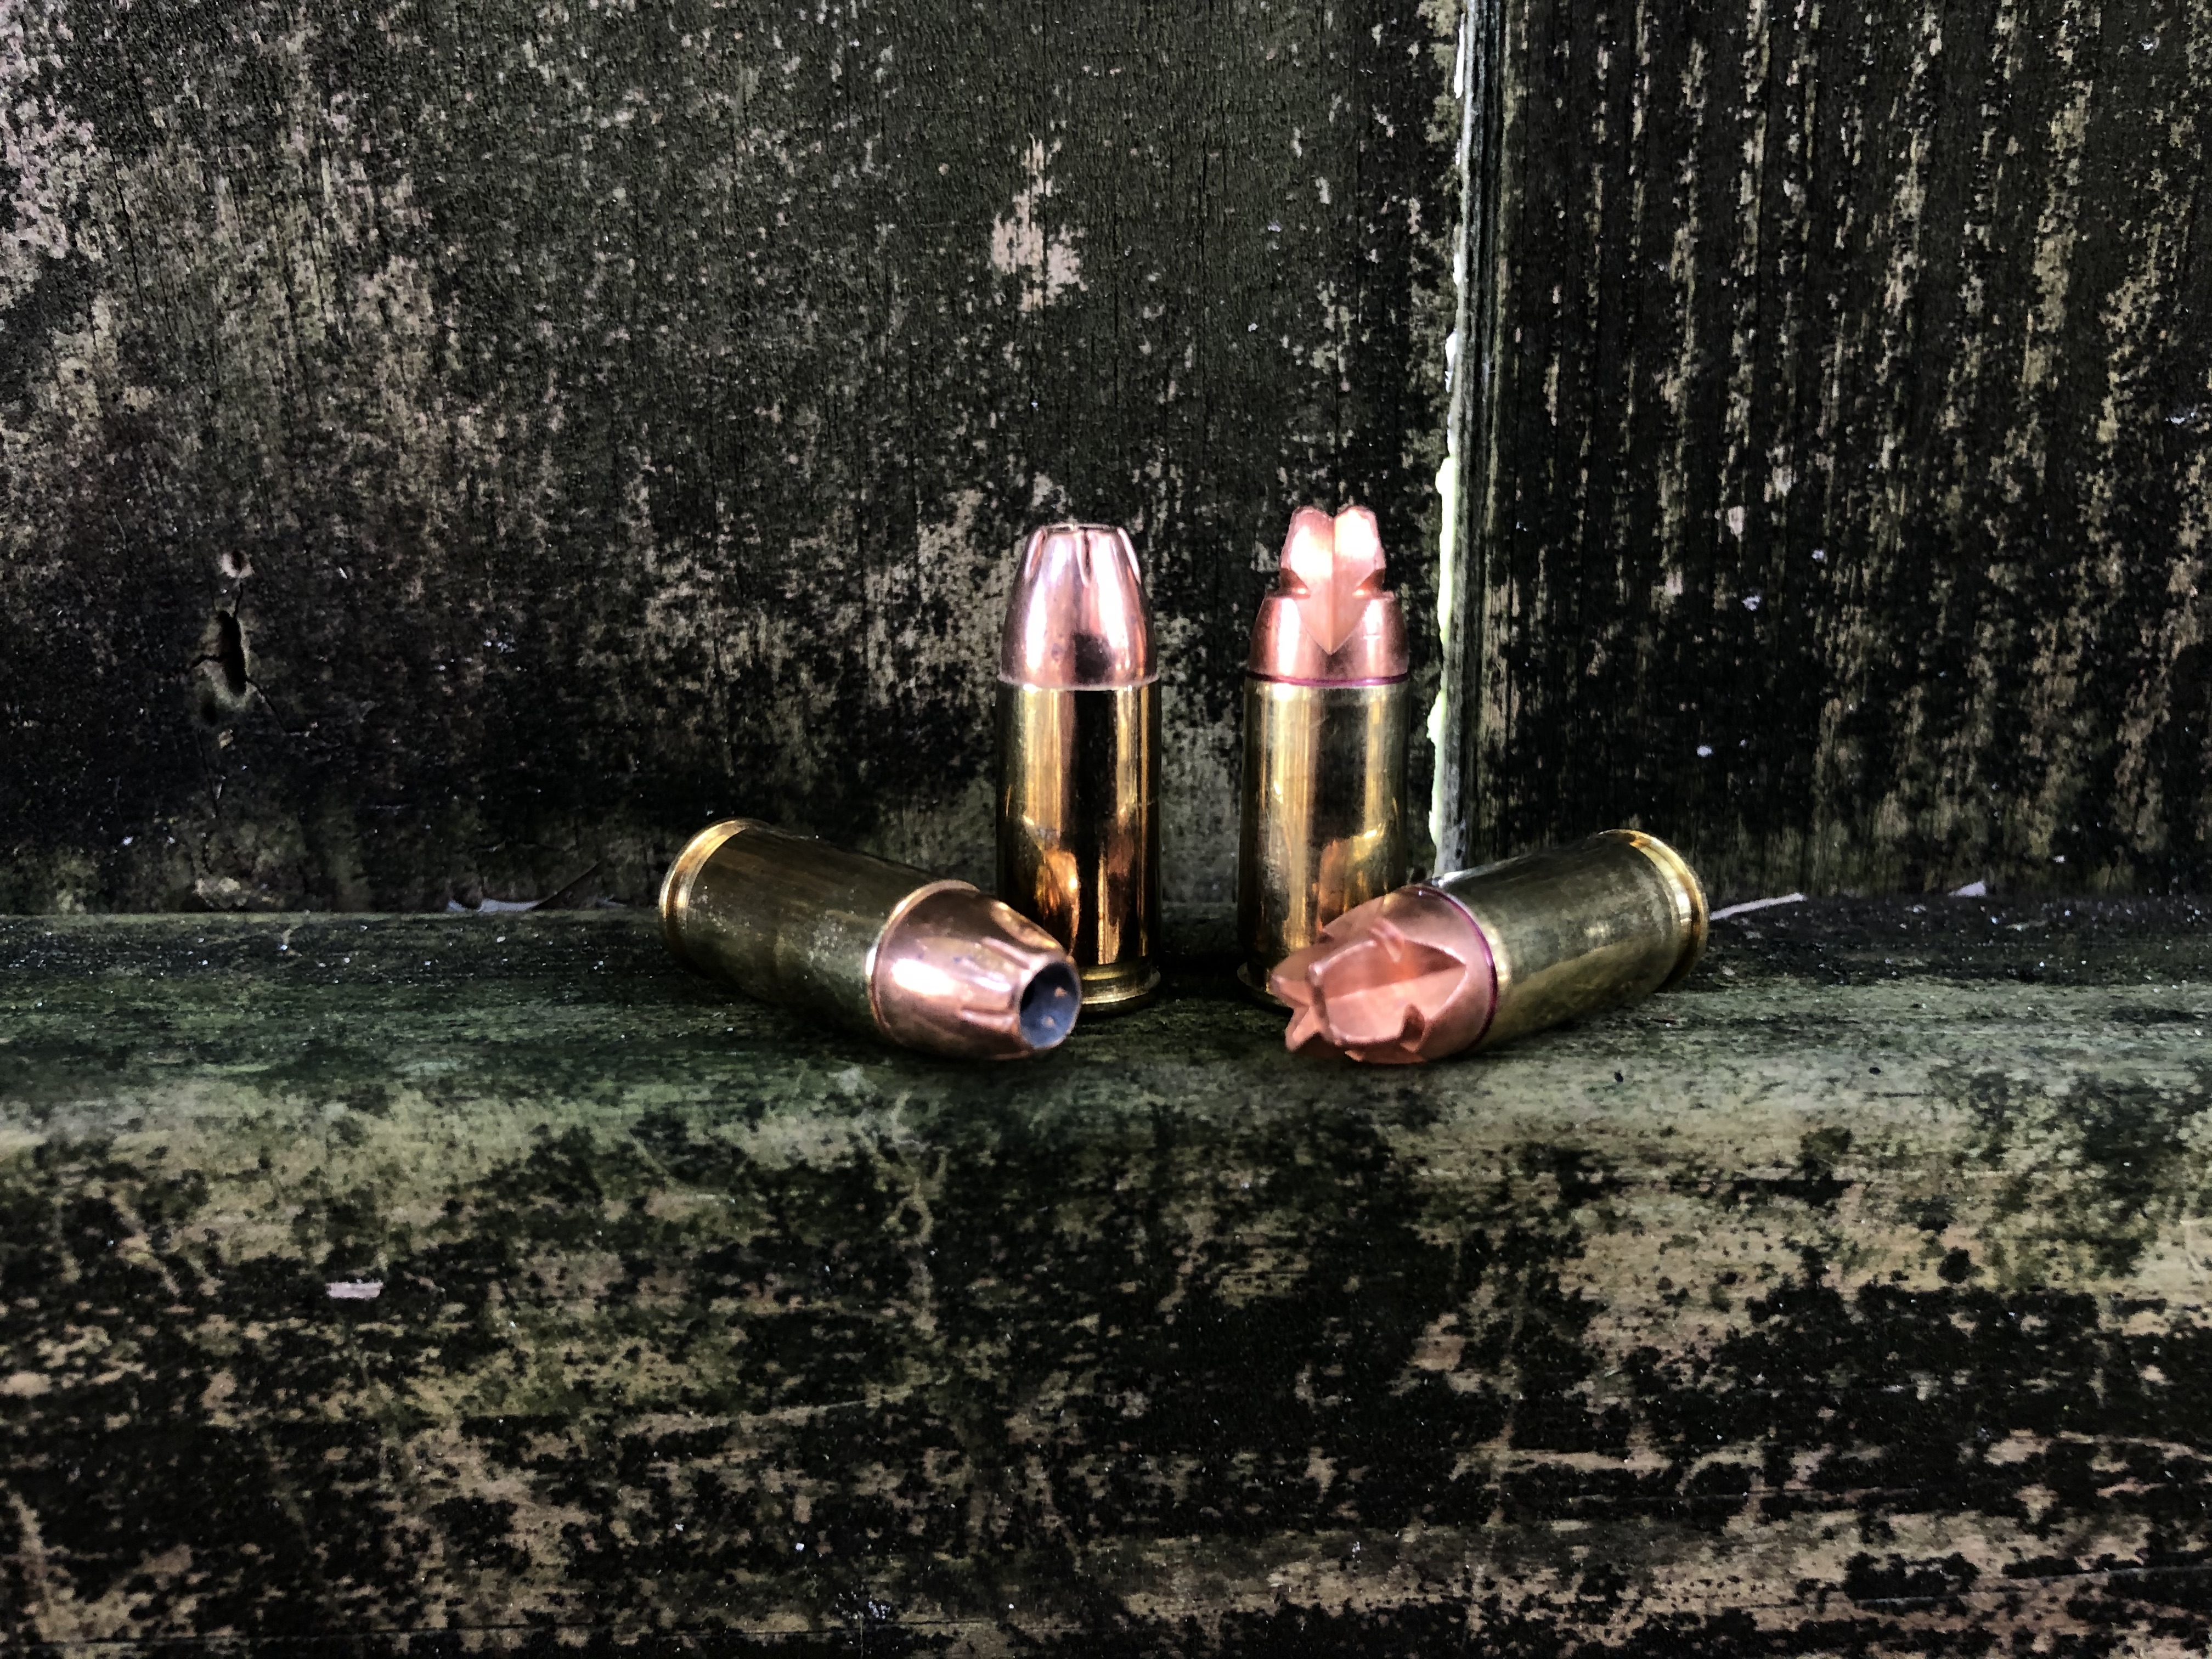 HoneyBadger and Hollow Points from Black Hills are solid. However, it's up to you to decide which you choose to shoot.